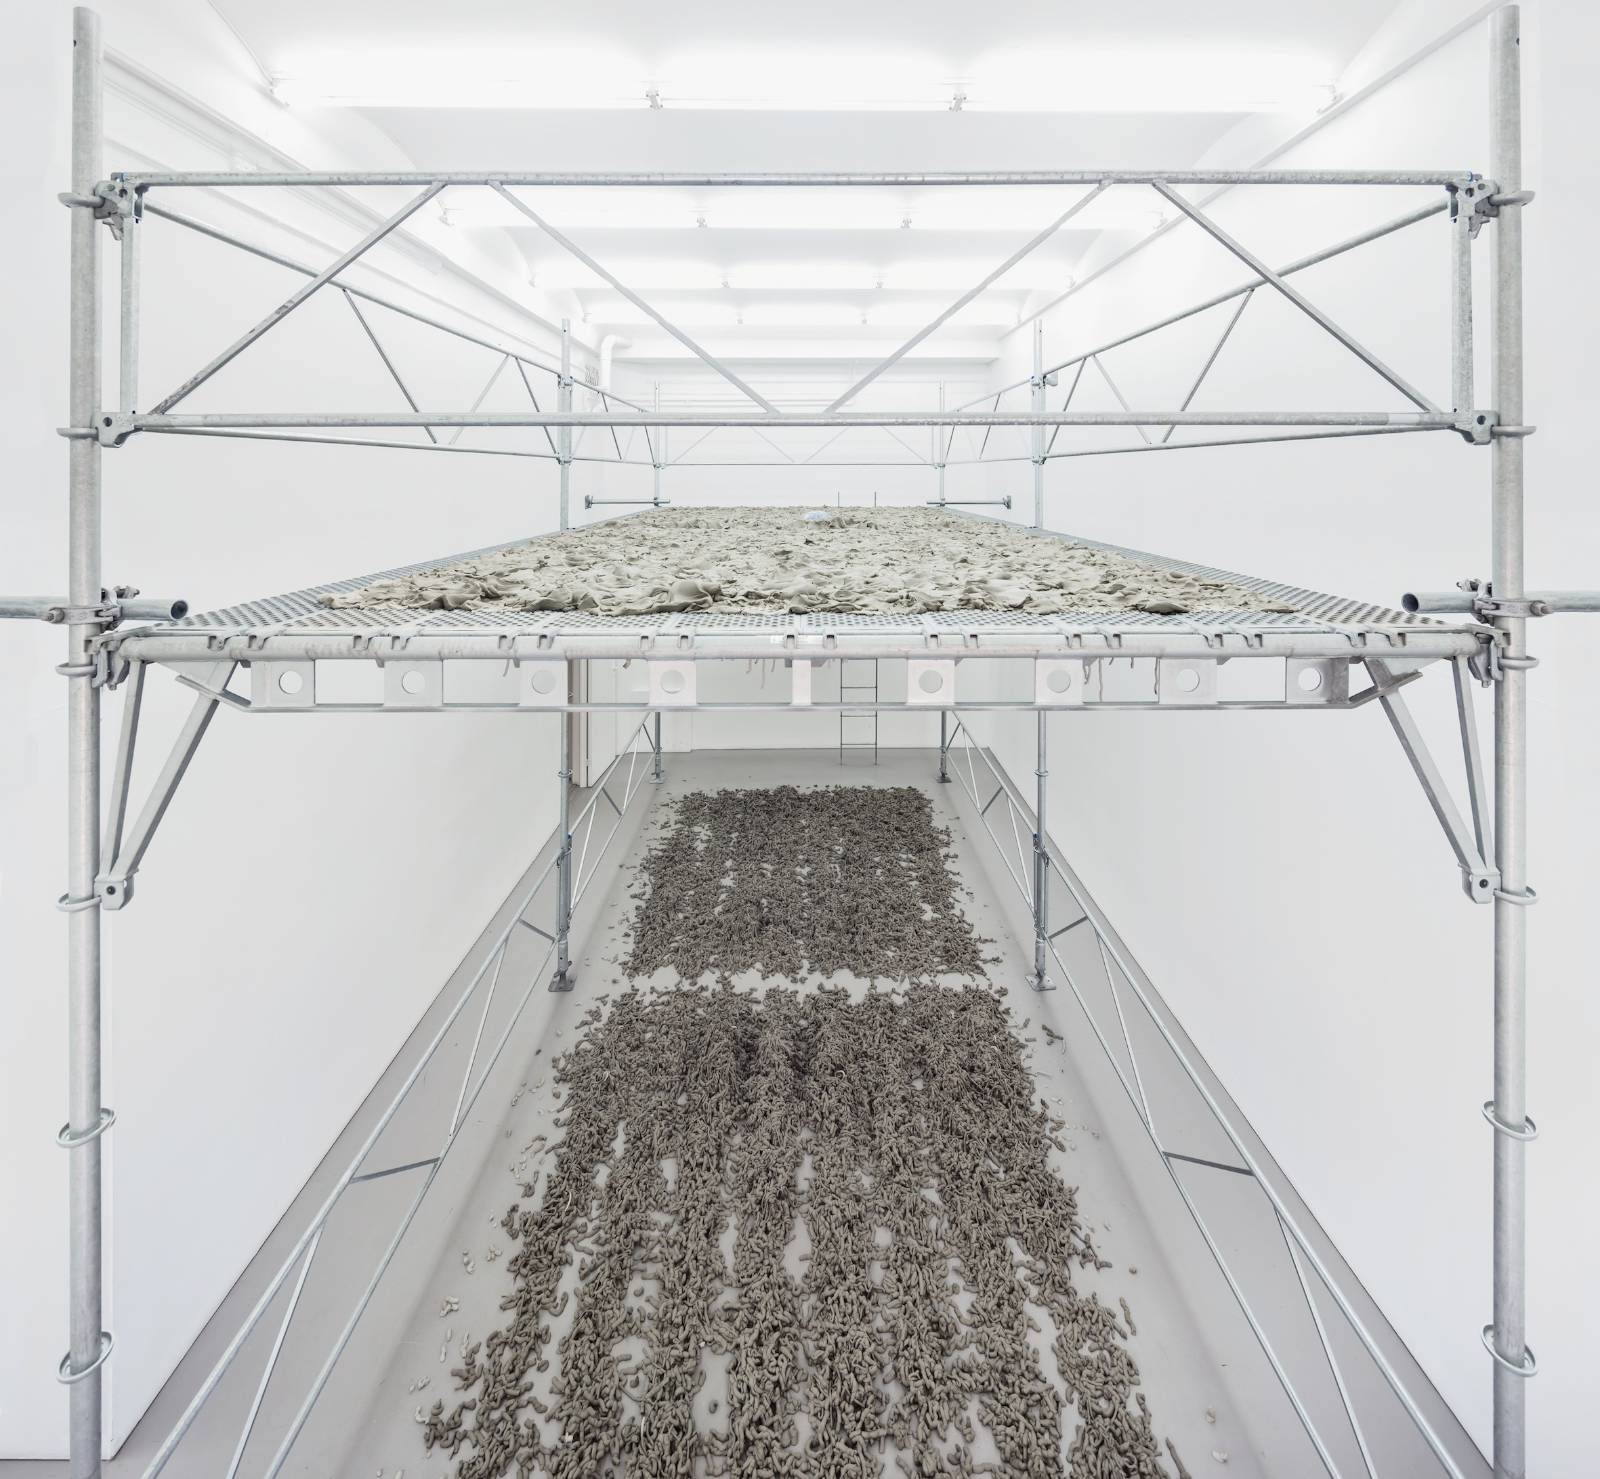 Kristina Matousch, Still Life Production, 2013, performance, scaffolding, steel planks, clay, 3 x 6 x 4 m